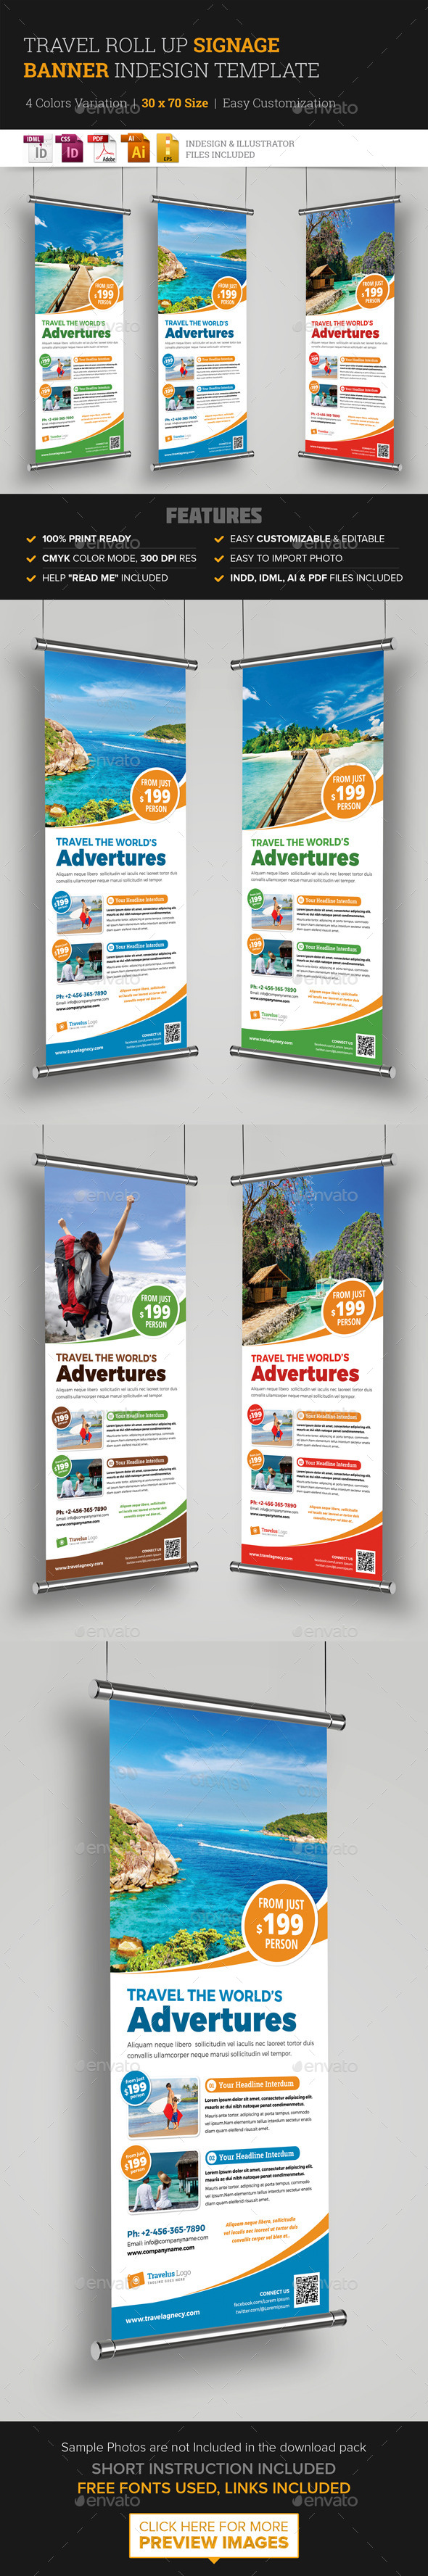 Travel Roll Up Banner Signage InDesign Template  - Signage Print Templates